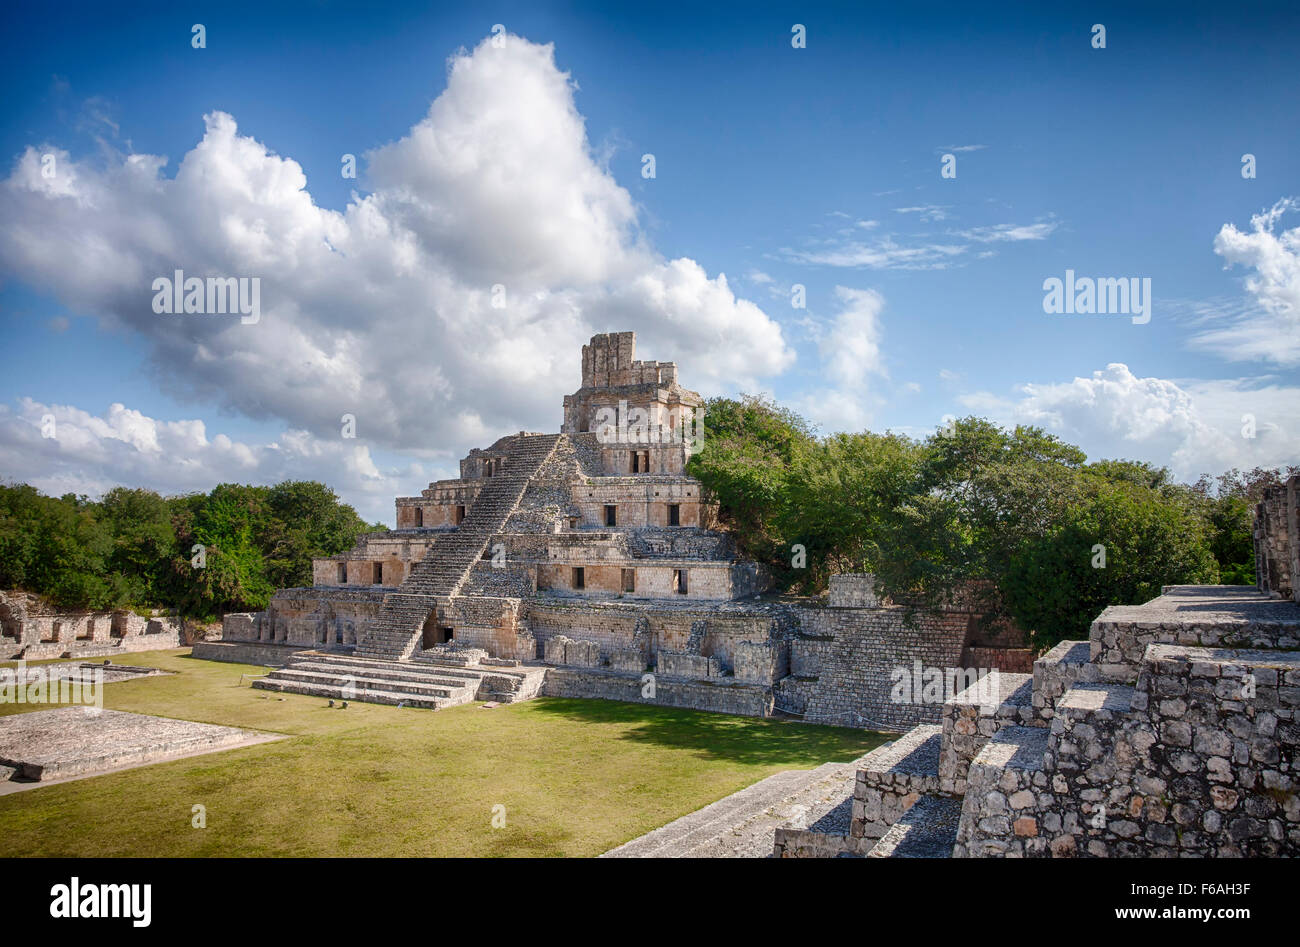 The Five Story Pyramid at the Mayan ruins of Edzna, Campeche, Mexico. - Stock Image